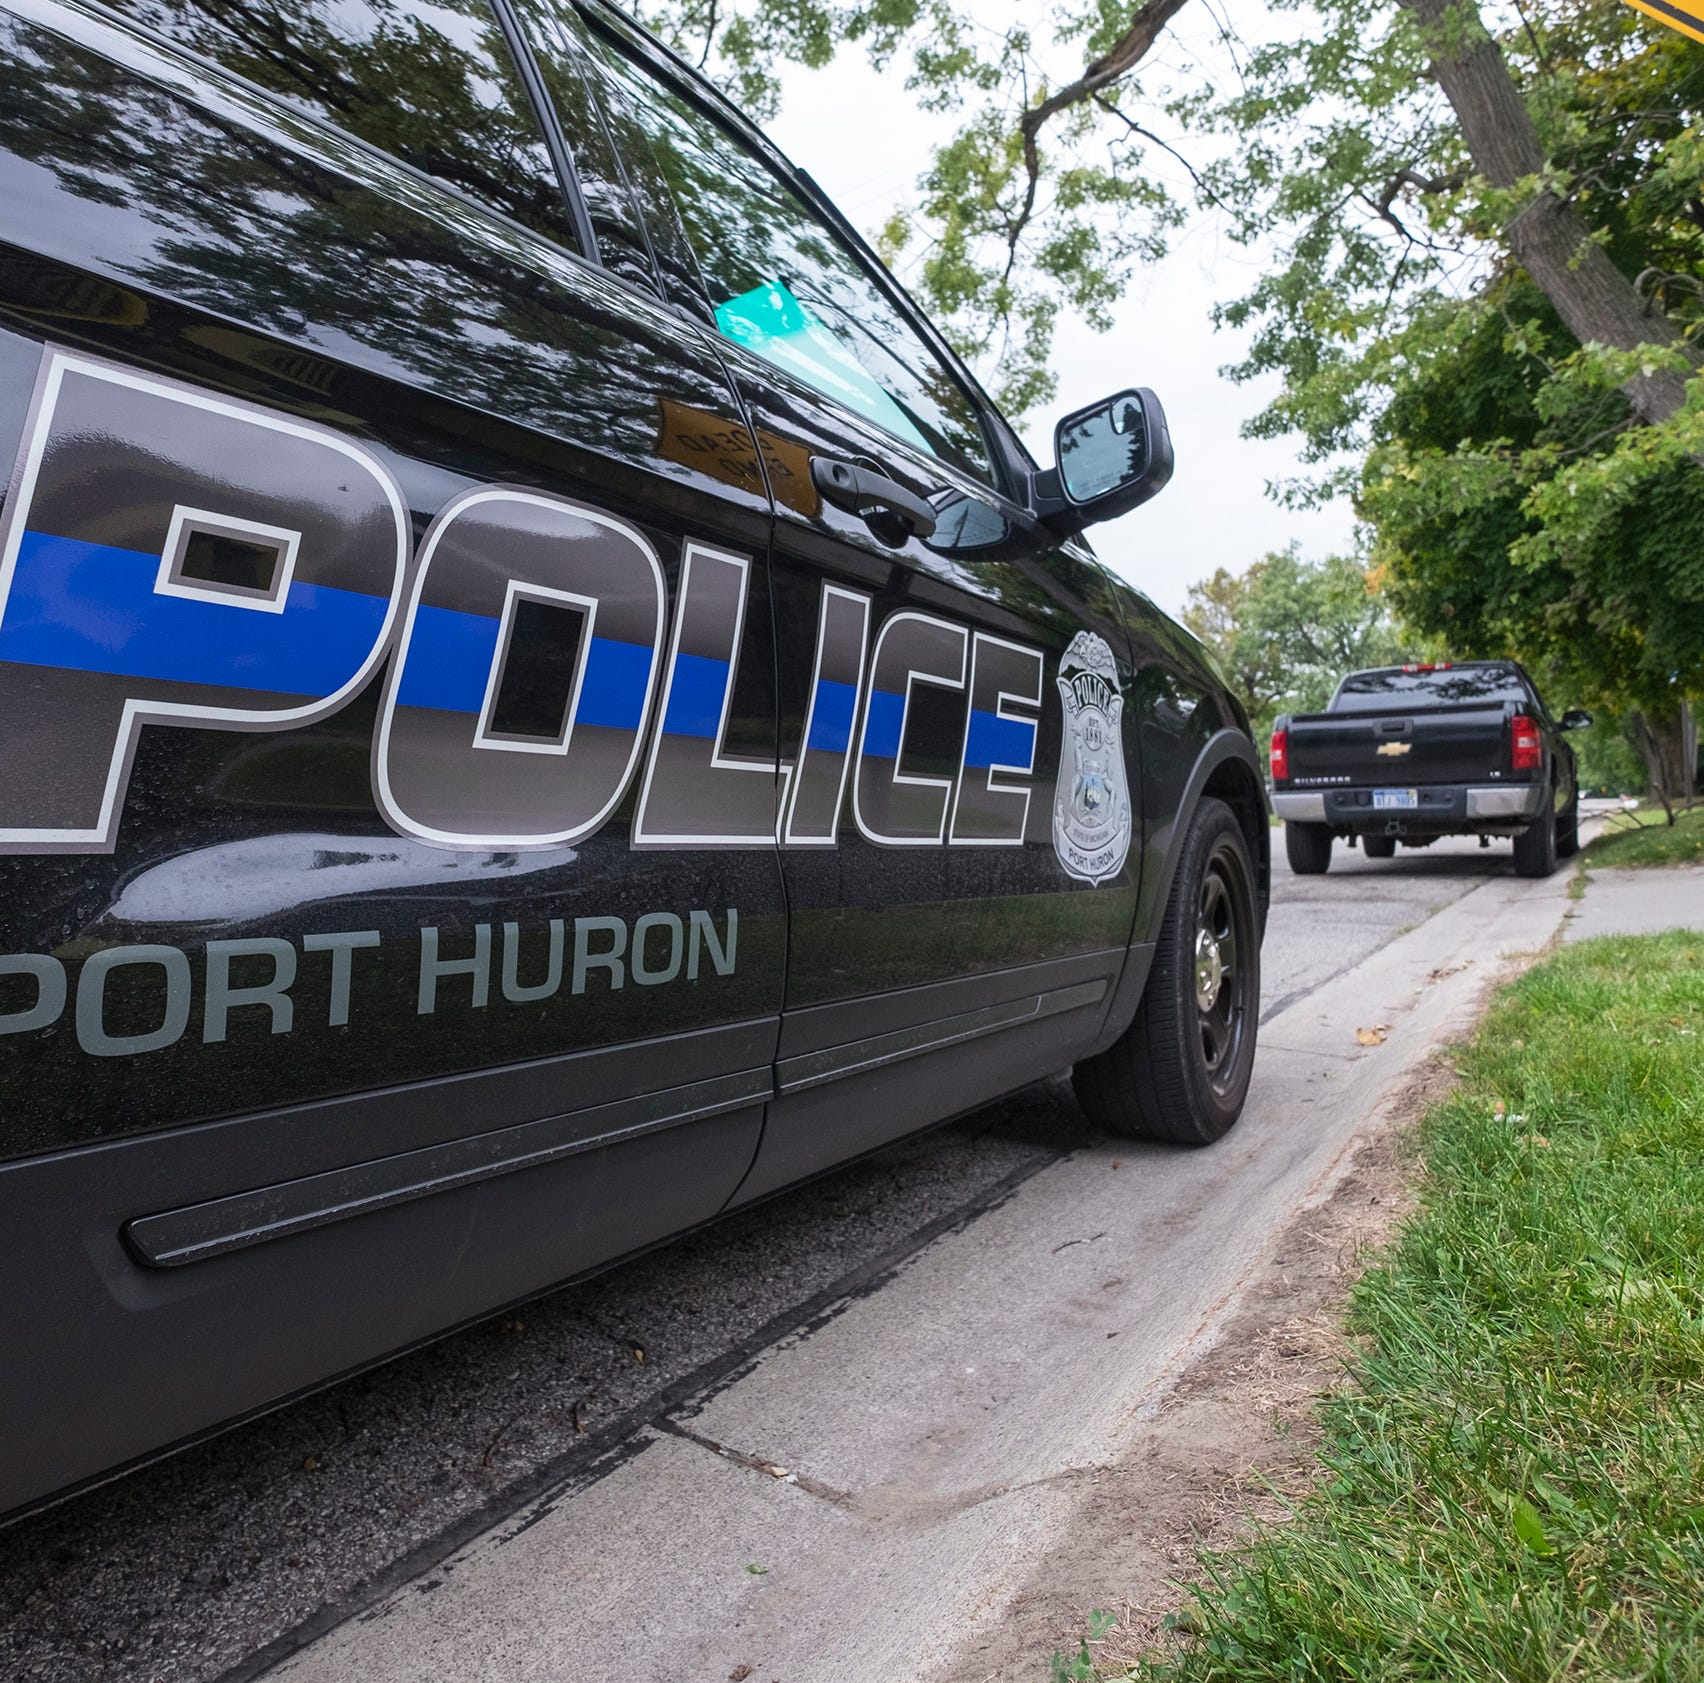 2 injured in Port Huron stabbing